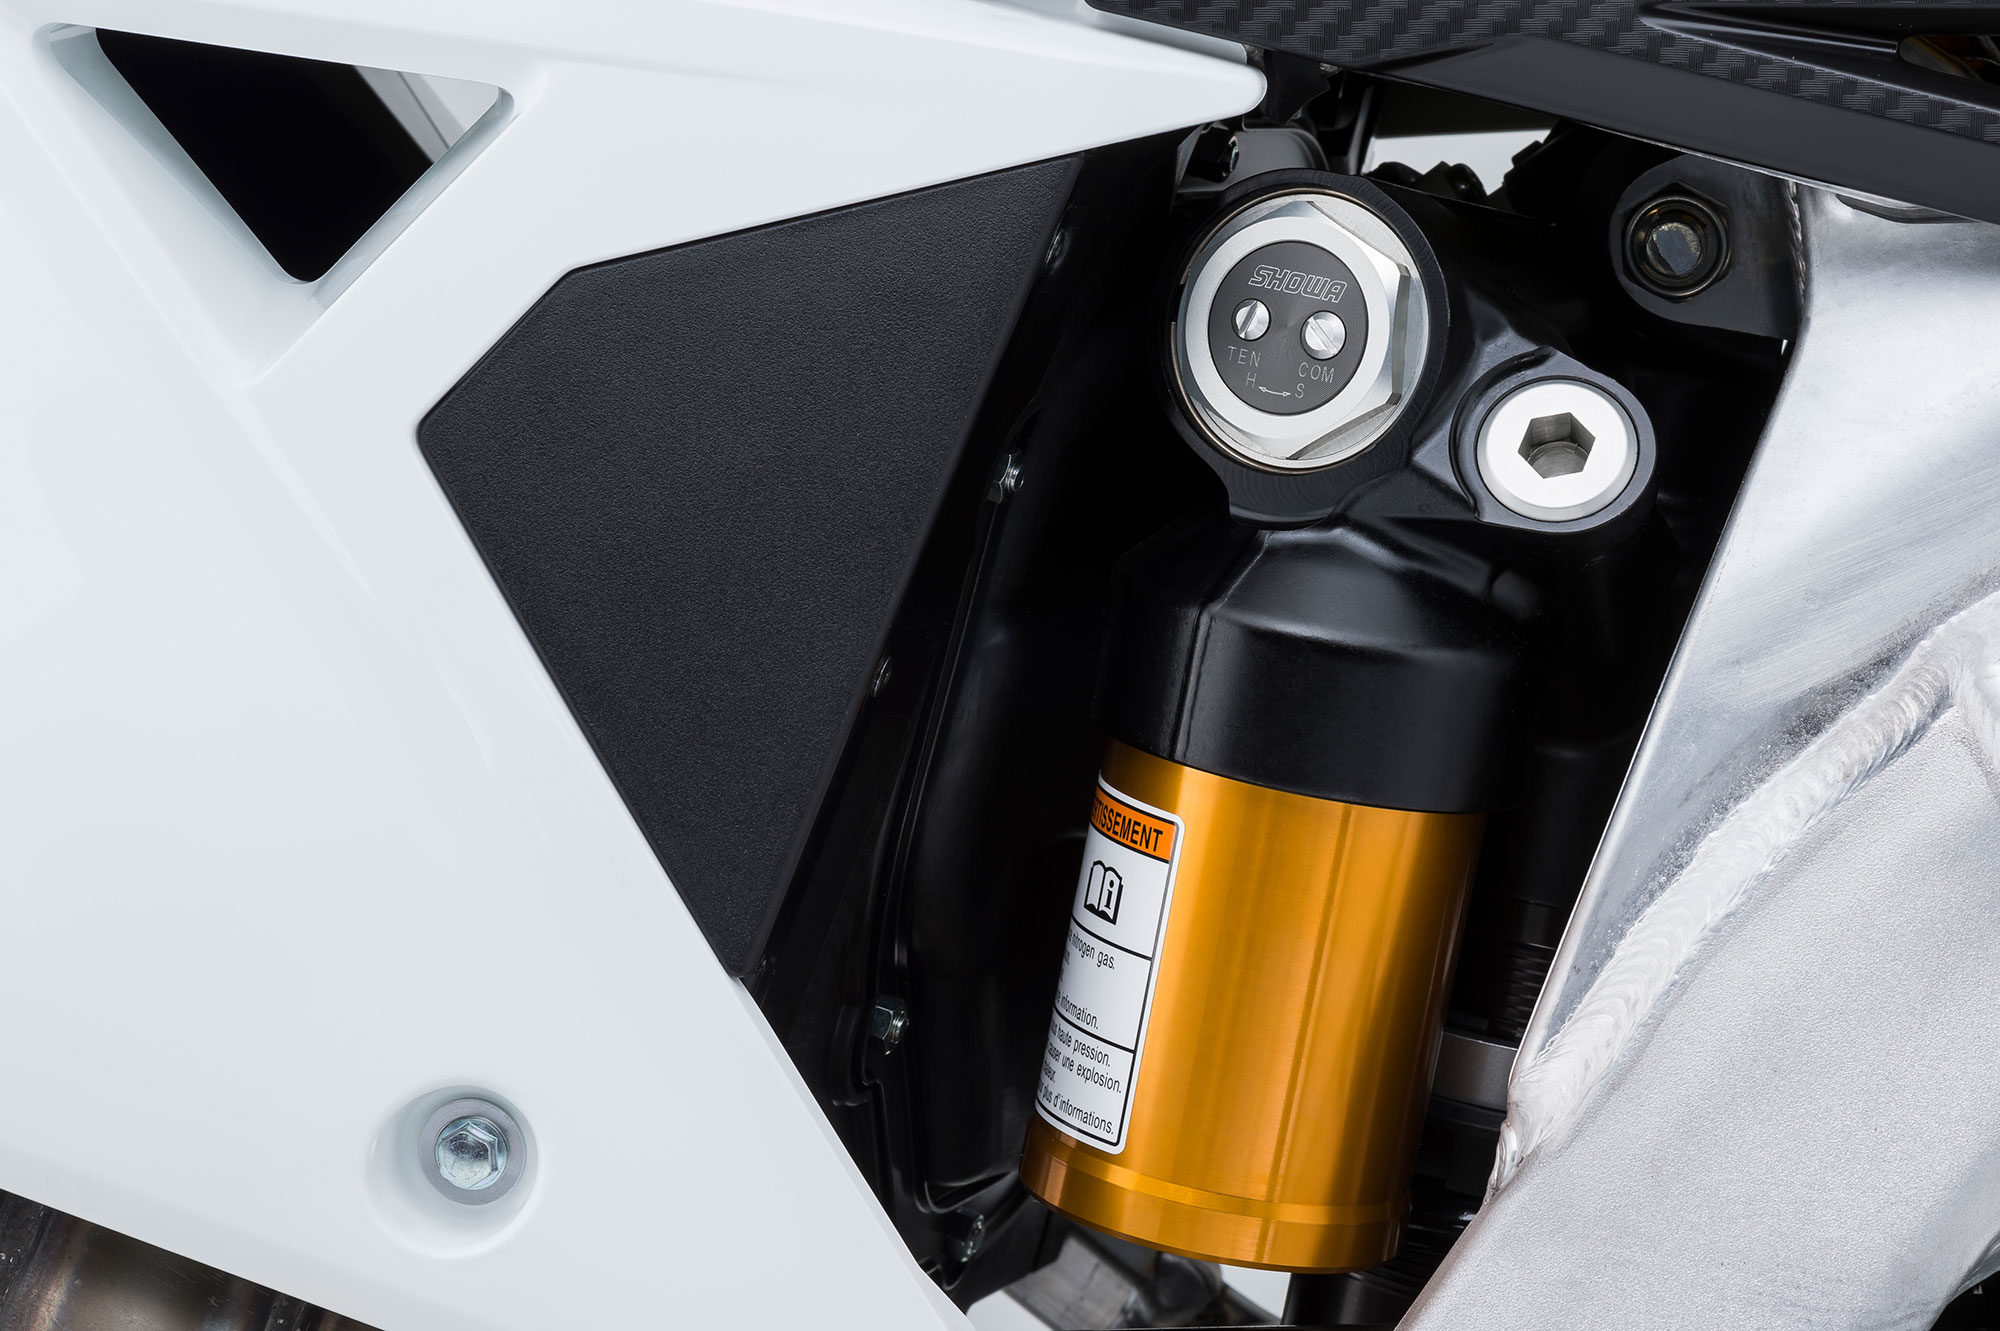 The Showa BFRC (Balance Free Rear Cushion) shock is something we have only seen on factory team's race machines. Showa says that the BFRC stabilizes the pressure balance, improves damping responsiveness and can operate under low pressure which can reduce friction.